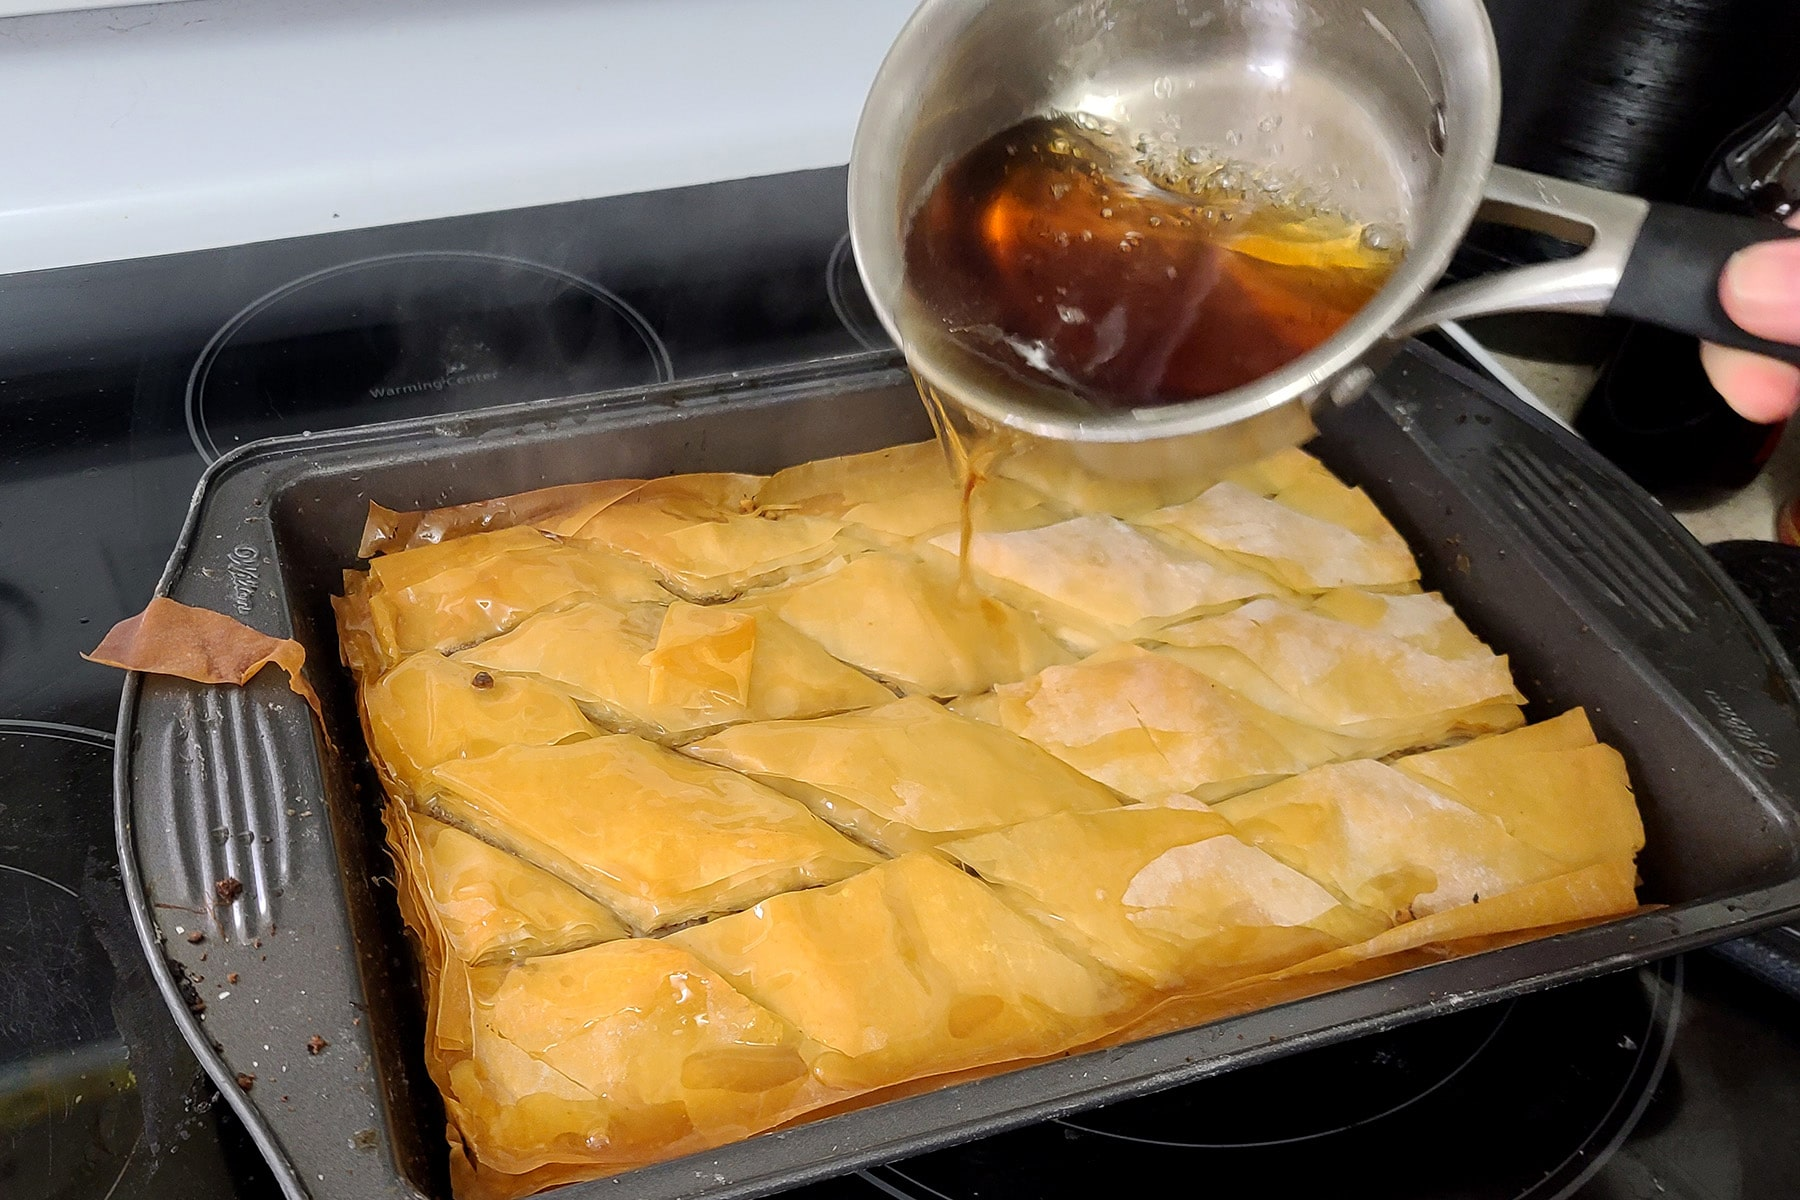 The pot of maple syrup mixture is being poured over the baked pan of baklava.